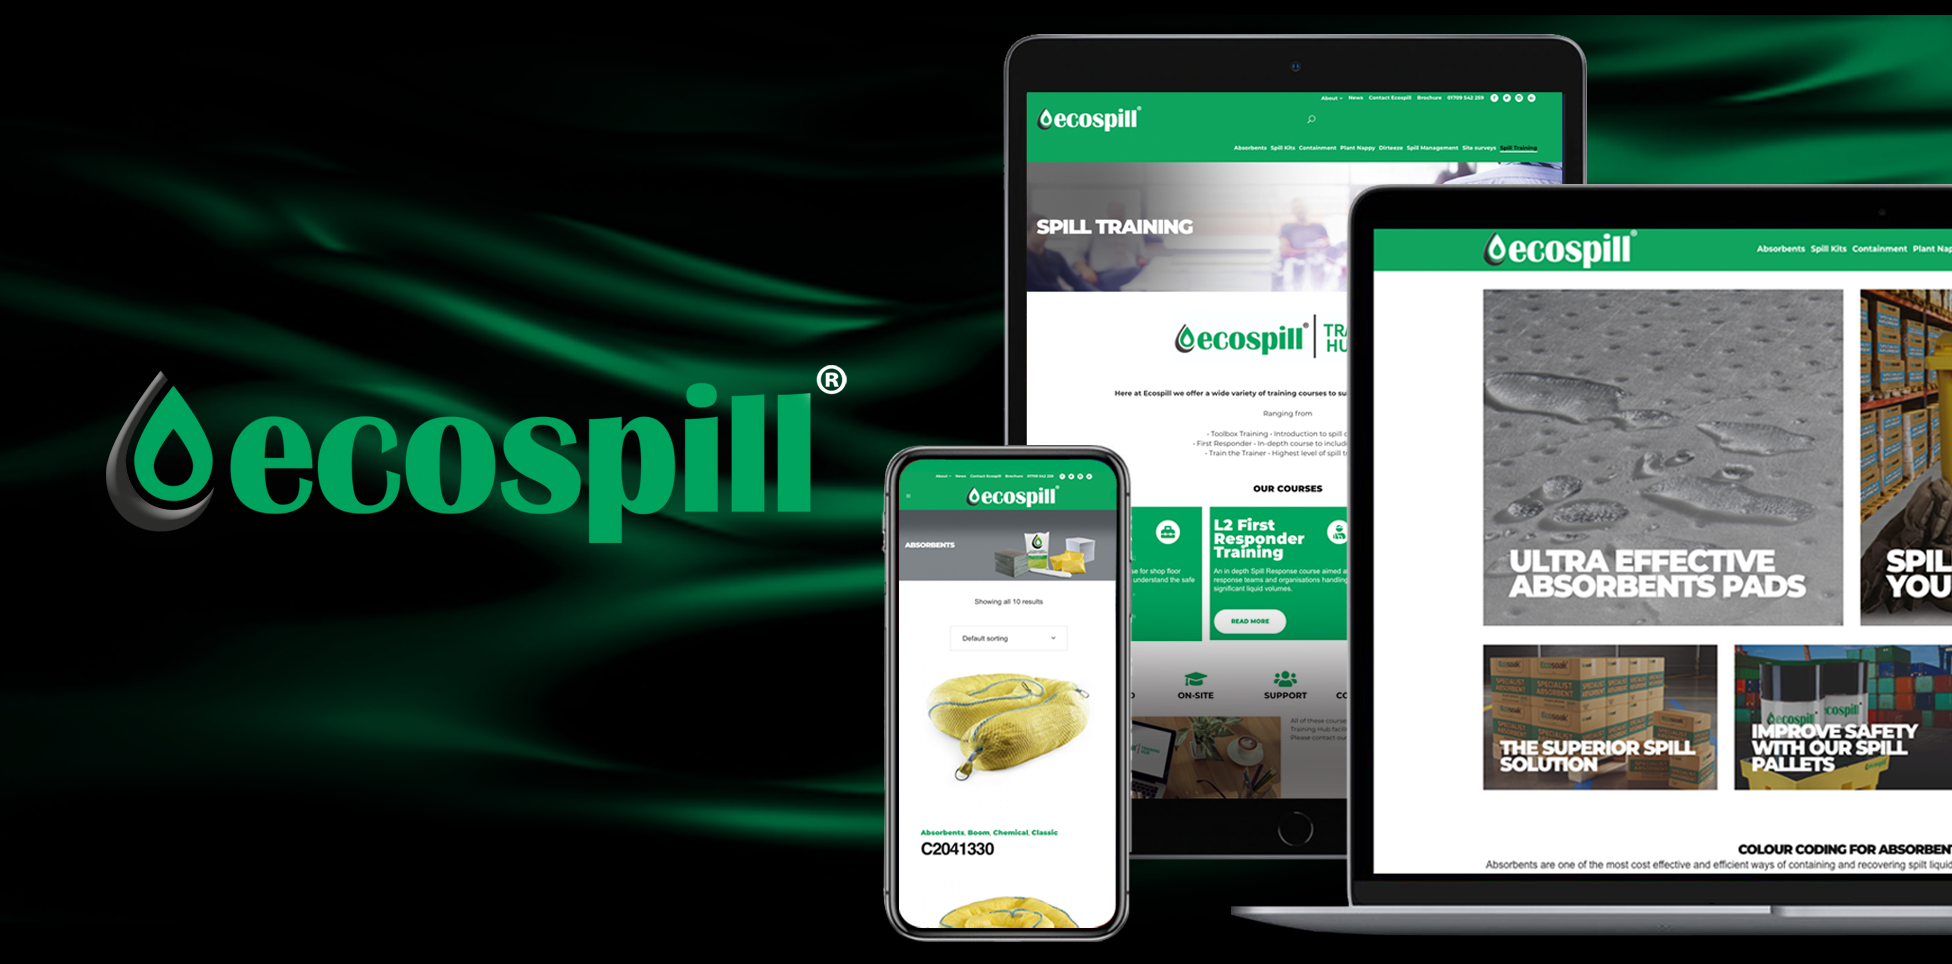 ecospill_image